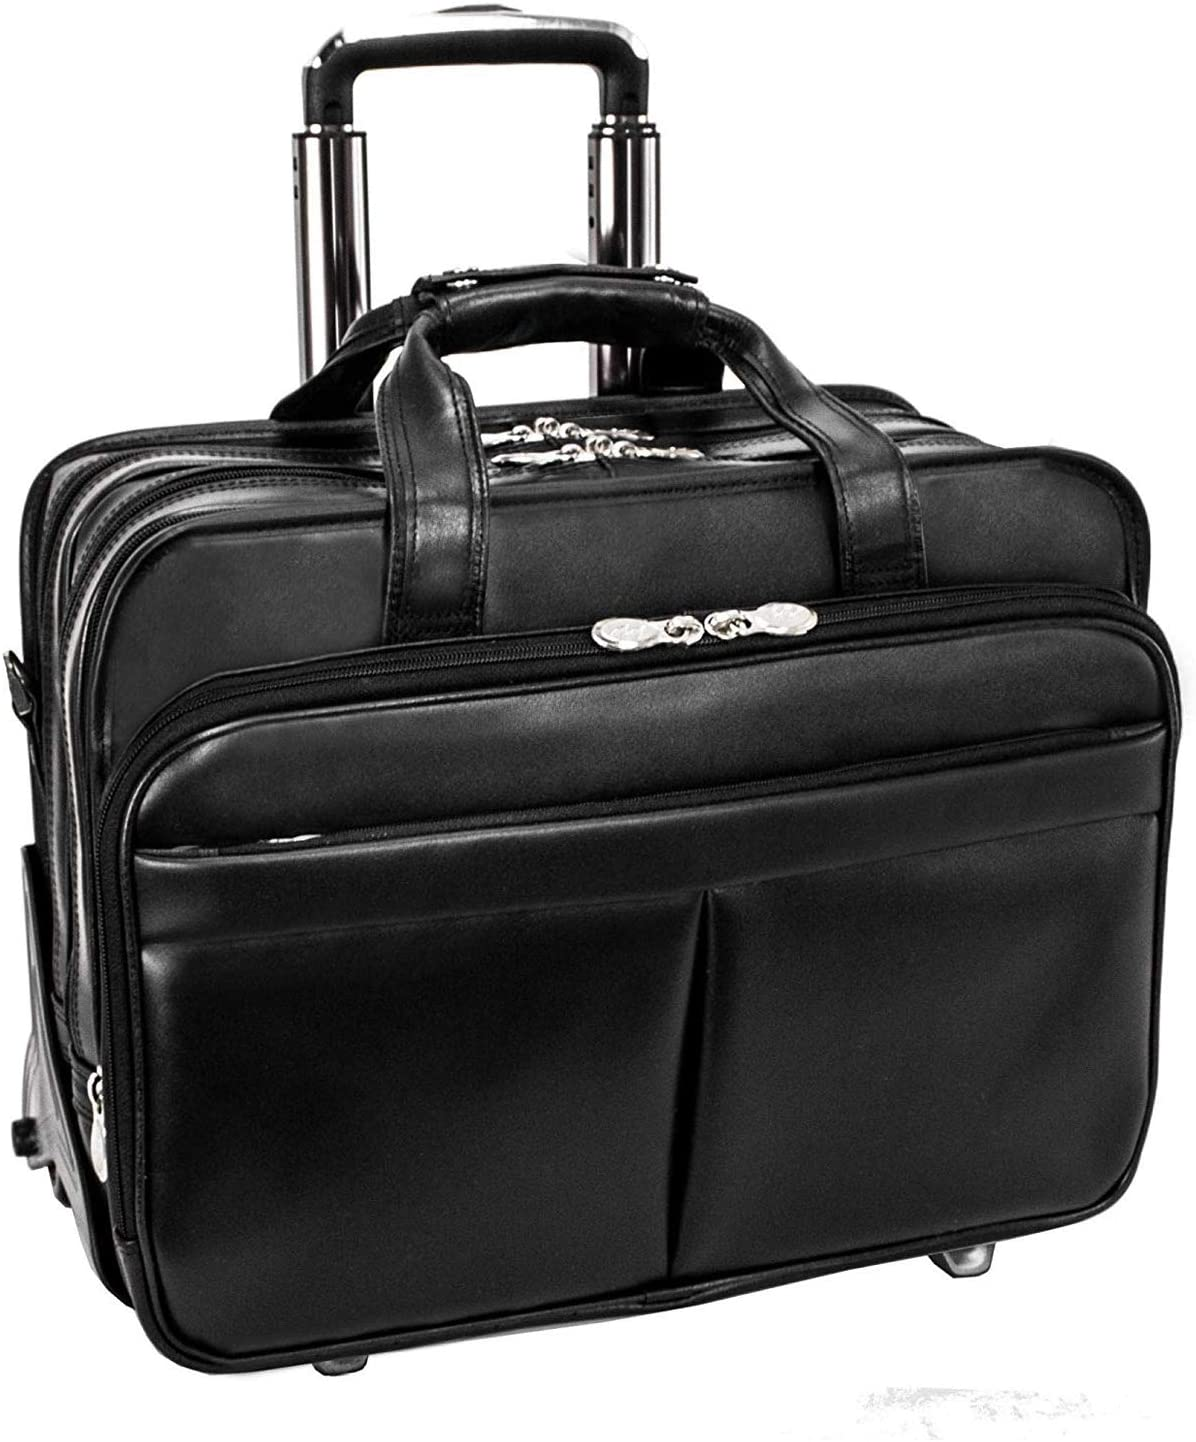 "McKlein R Series Roosevelt 17"" Leather Detachable Wheeled Laptop Case with Removable Sleeve"